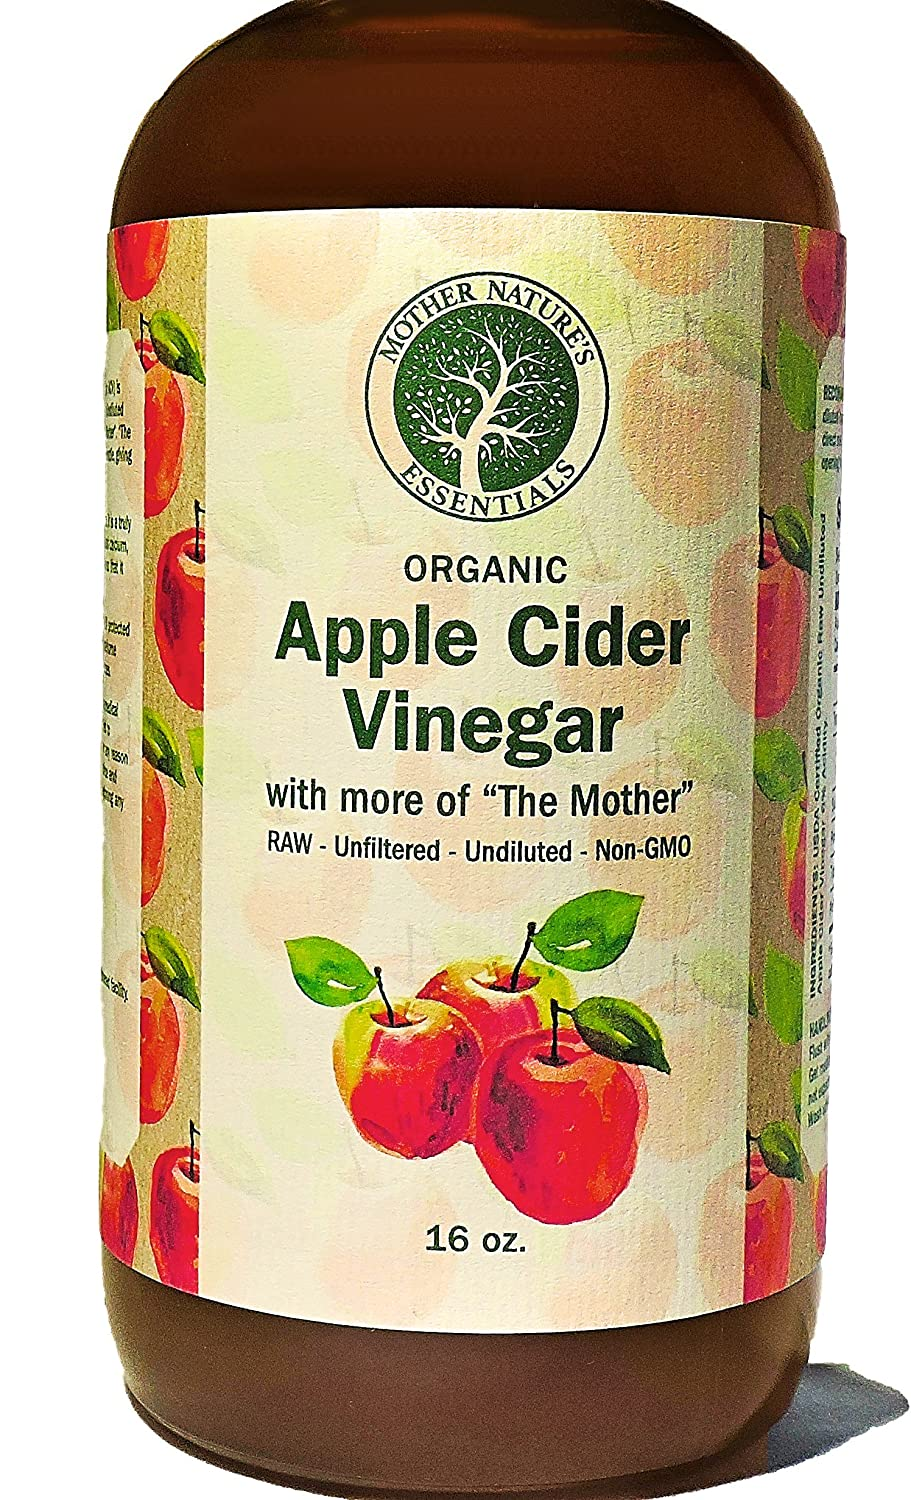 """Apple Cider Vinegar, USDA Organic Raw, Unfiltered, Undiluted with """"The Mother"""", Natures Appetite Suppressant Perfect with Garcinia Cambogia Weight Loss Program"""